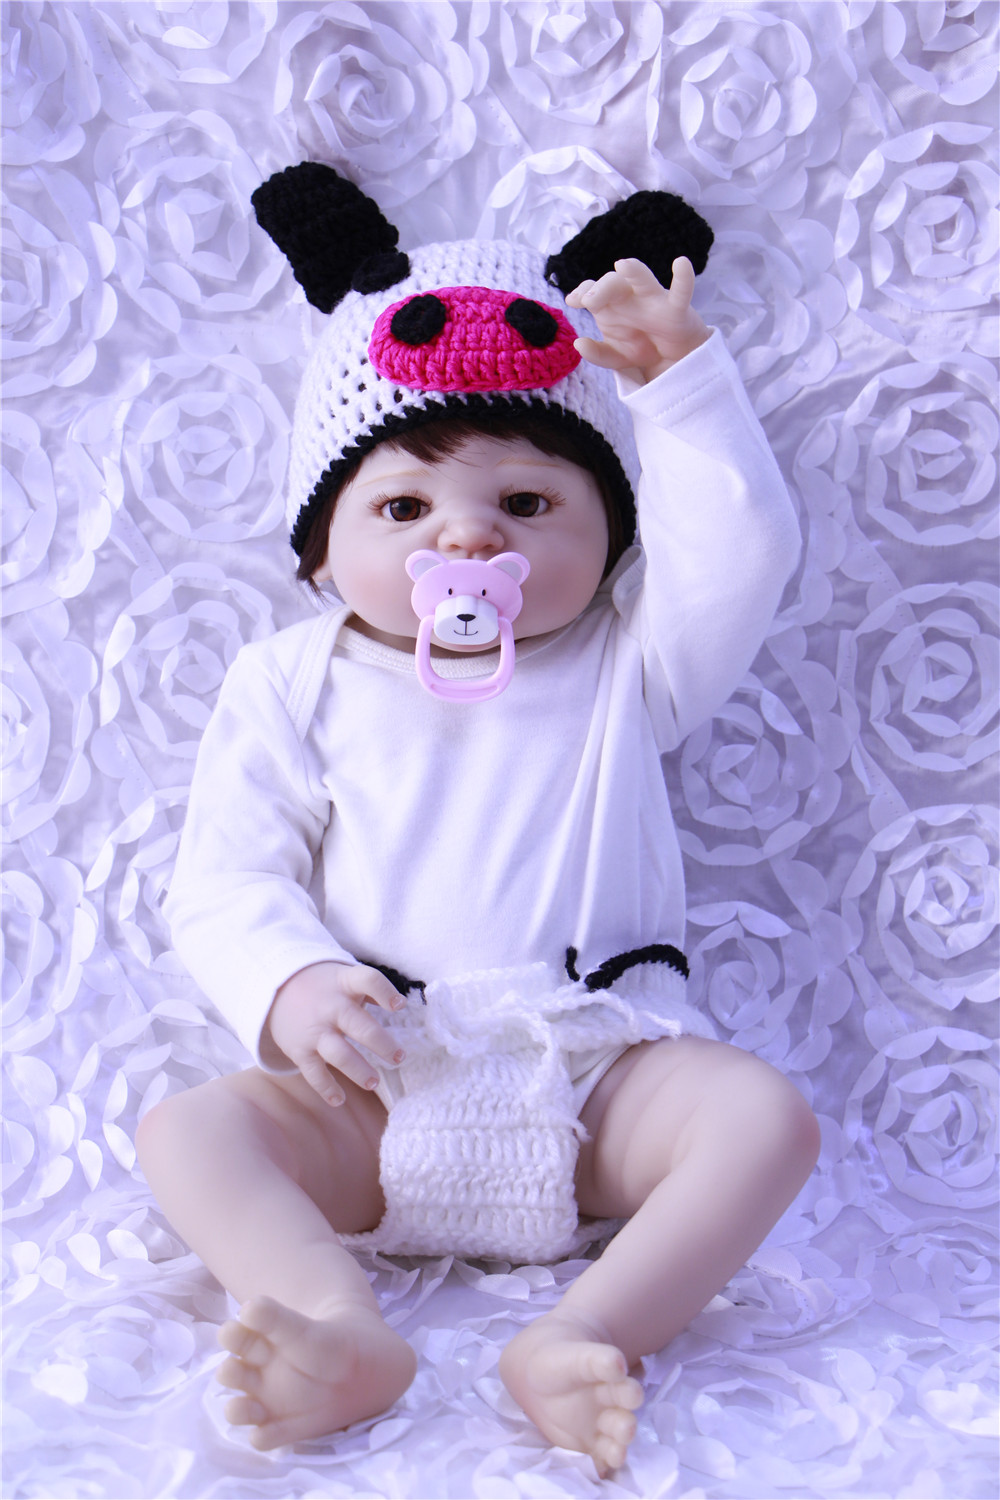 Full Silicone Vinyl Reborn Baby Doll Realistic Girl Babies Dolls 23 Inch 57 cm Lifelike Princess Kids Toy Children Birthday GiftFull Silicone Vinyl Reborn Baby Doll Realistic Girl Babies Dolls 23 Inch 57 cm Lifelike Princess Kids Toy Children Birthday Gift